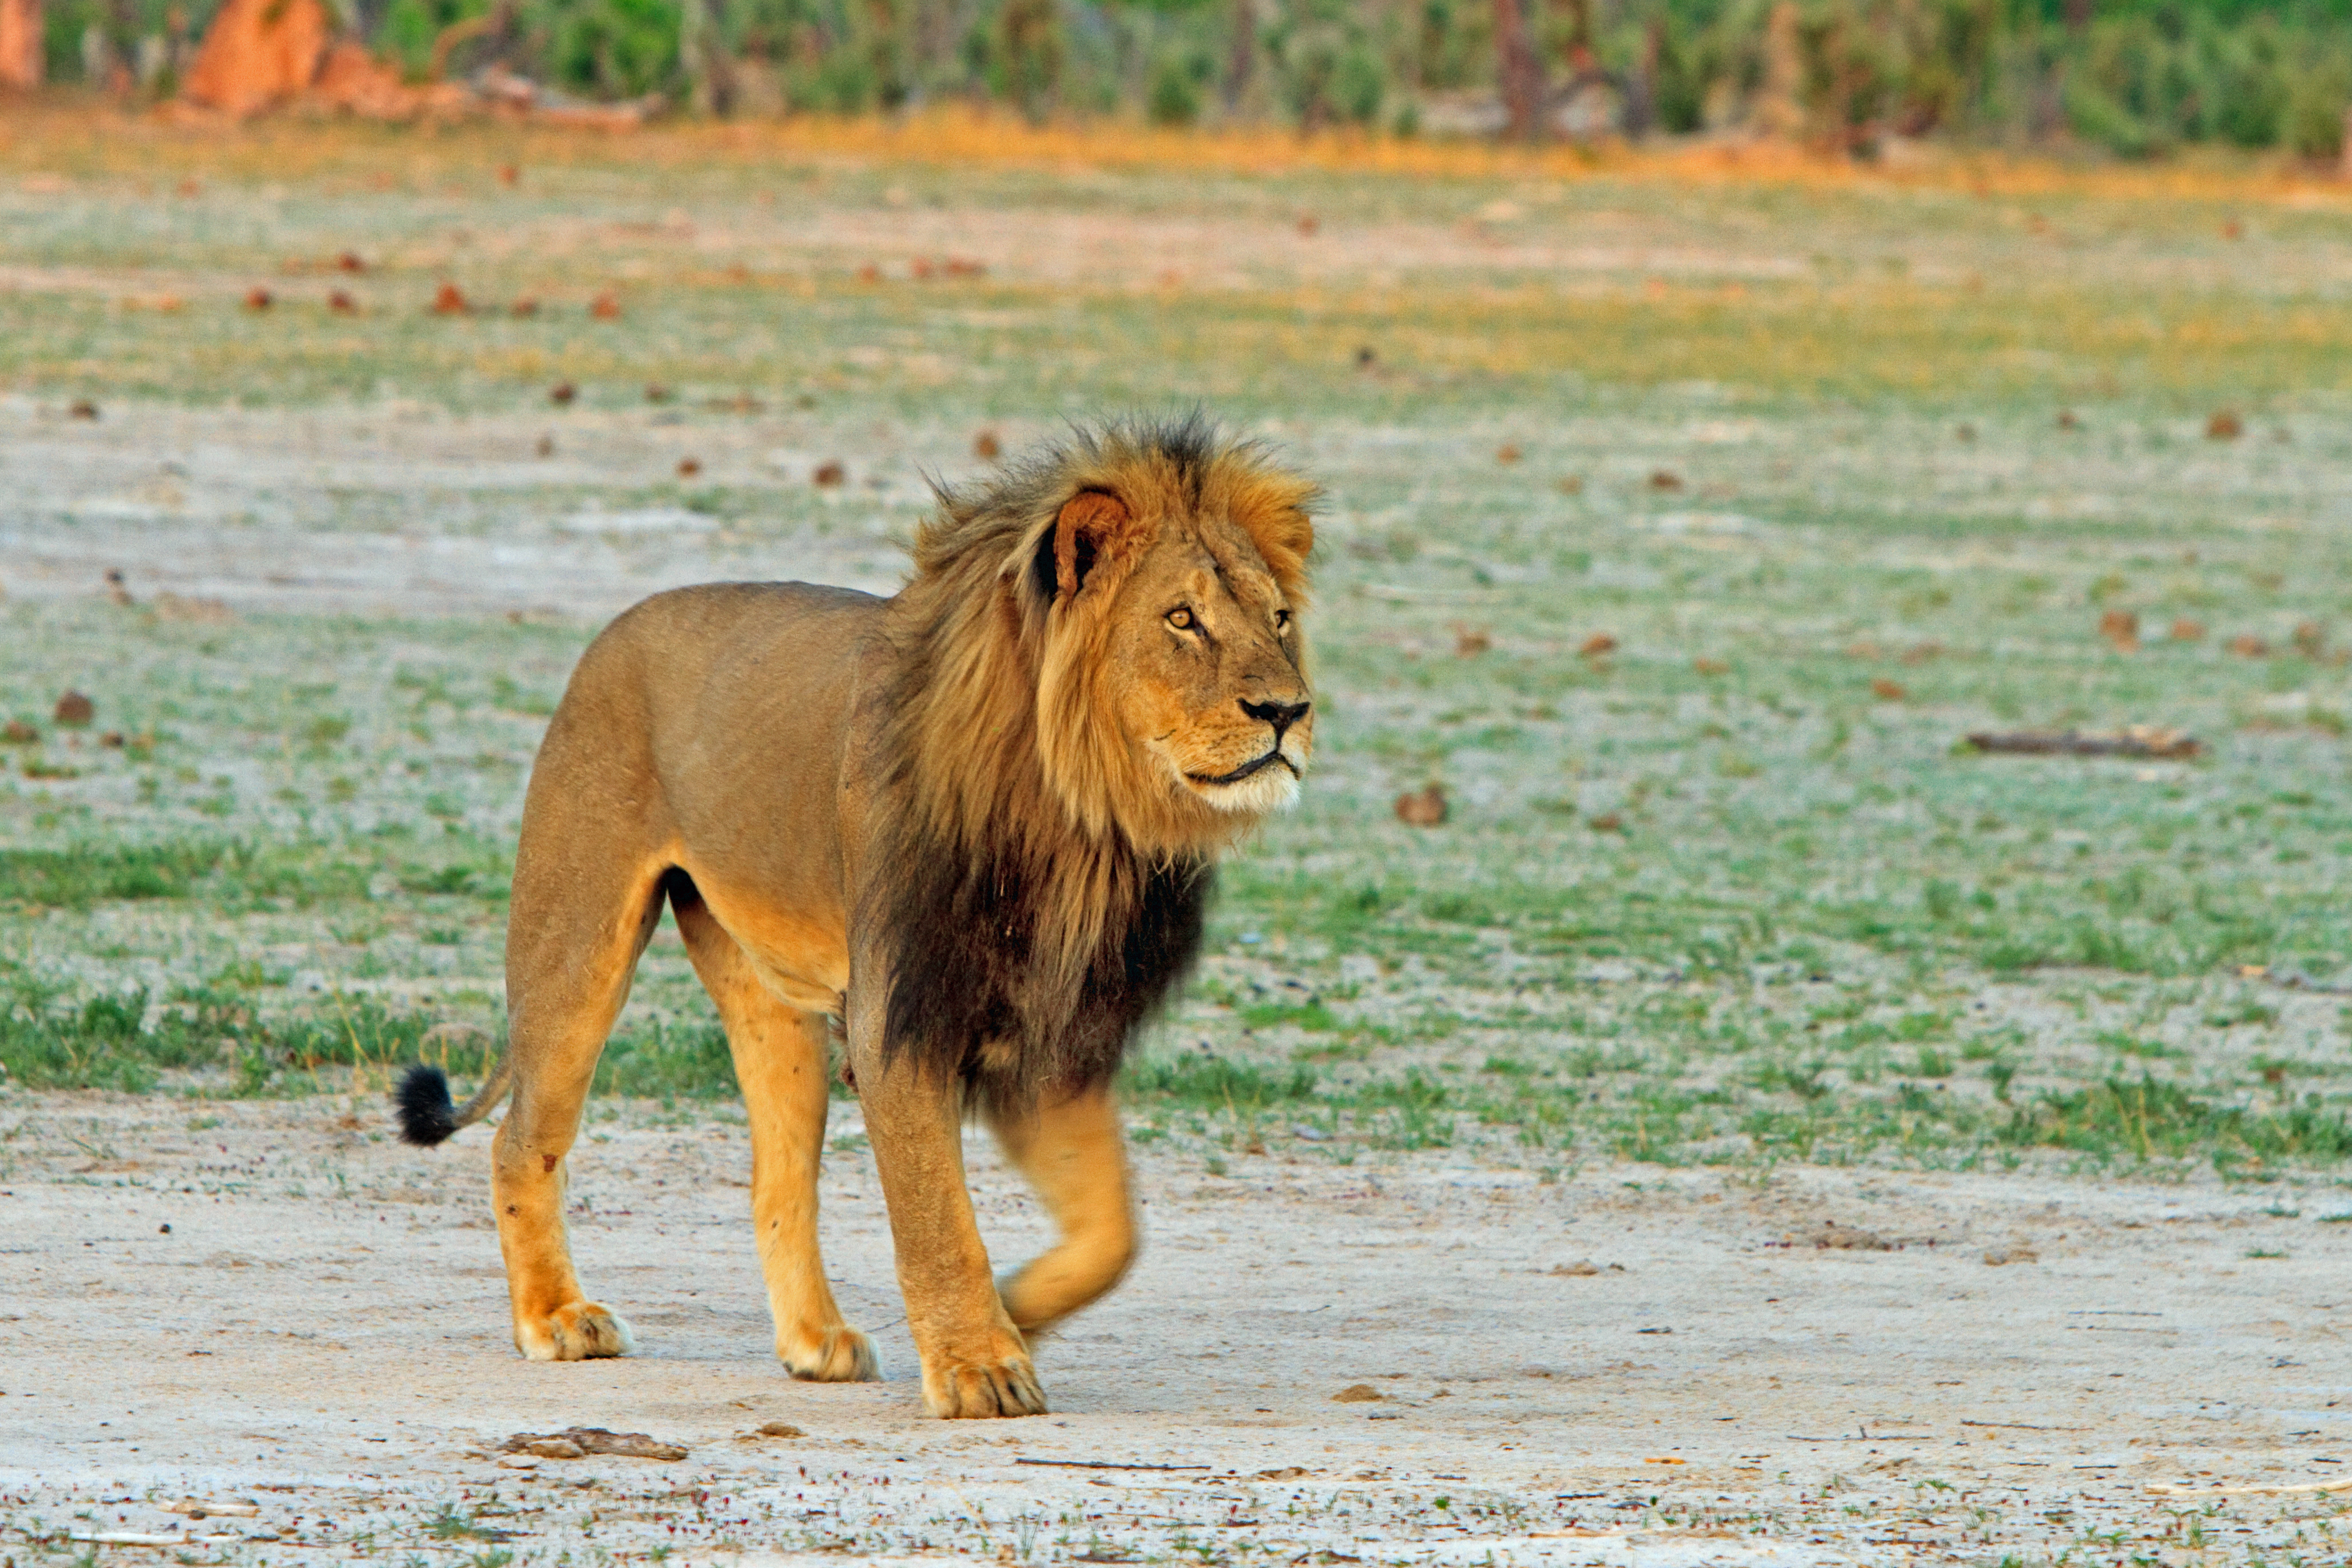 A male lion walking in a field in Hwange National Park, Zimbabwe.